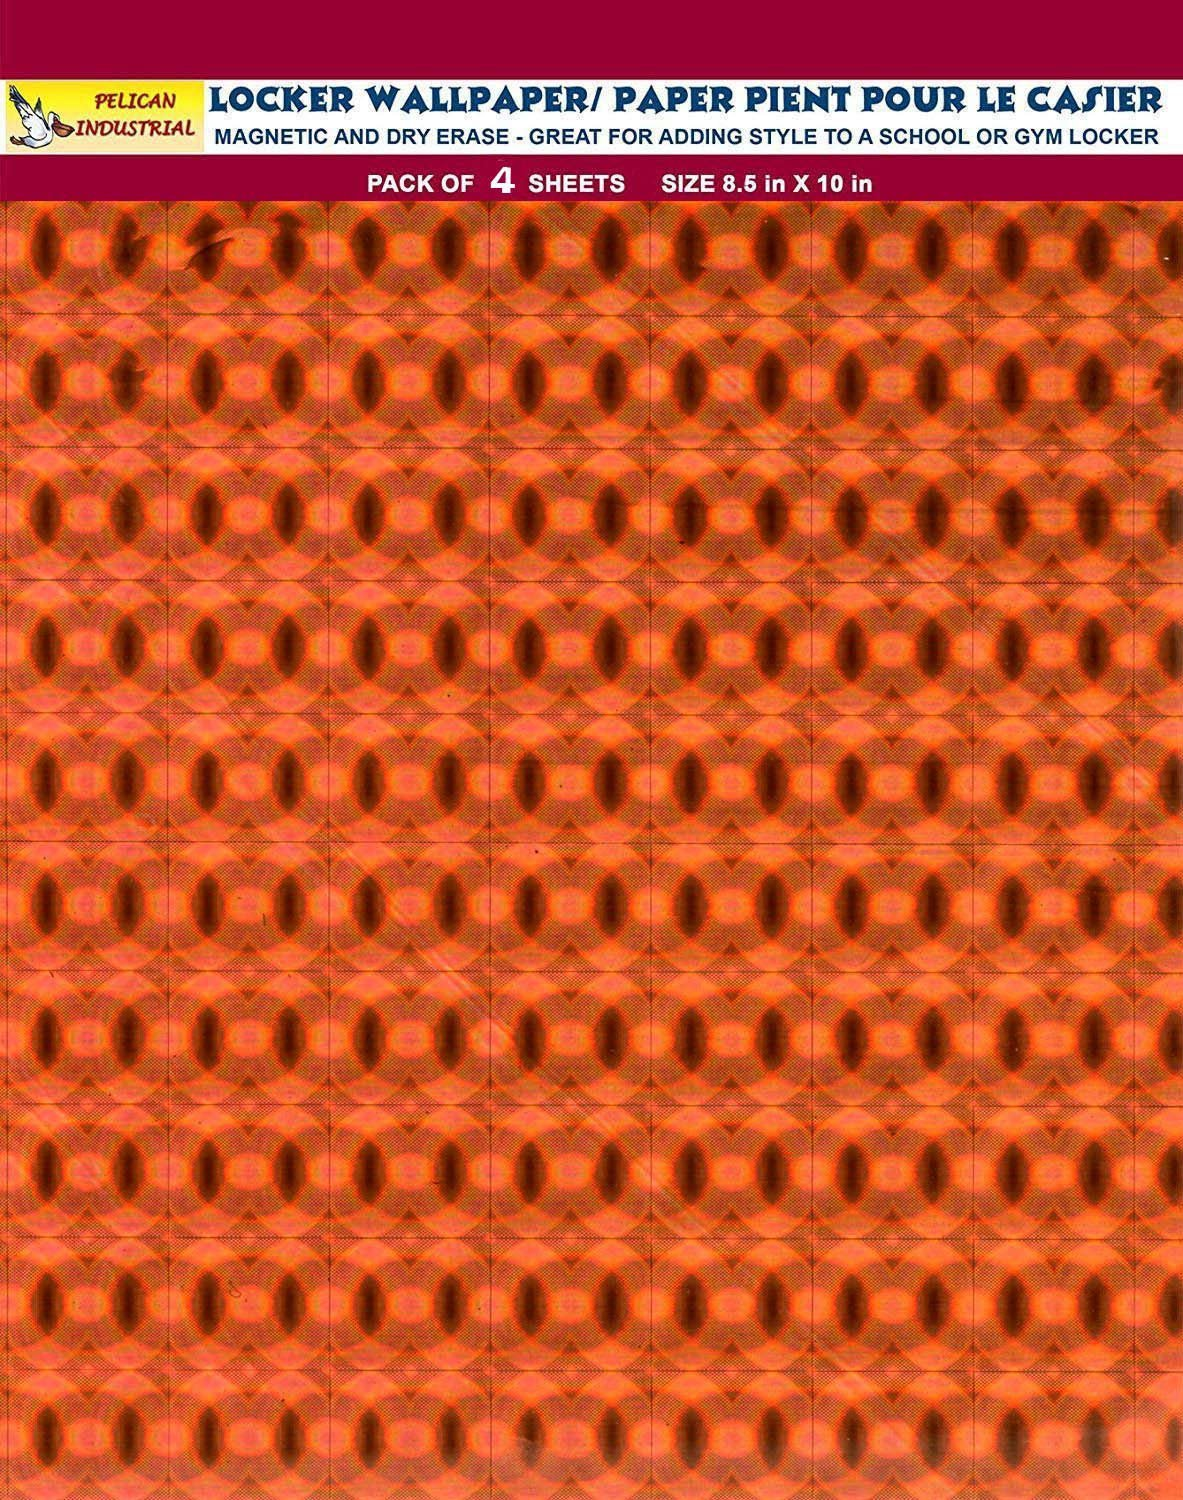 Magnetic Locker Wallpaper - Dry Erasable Holographic Designs - Pack of 4 Sheets - Peach